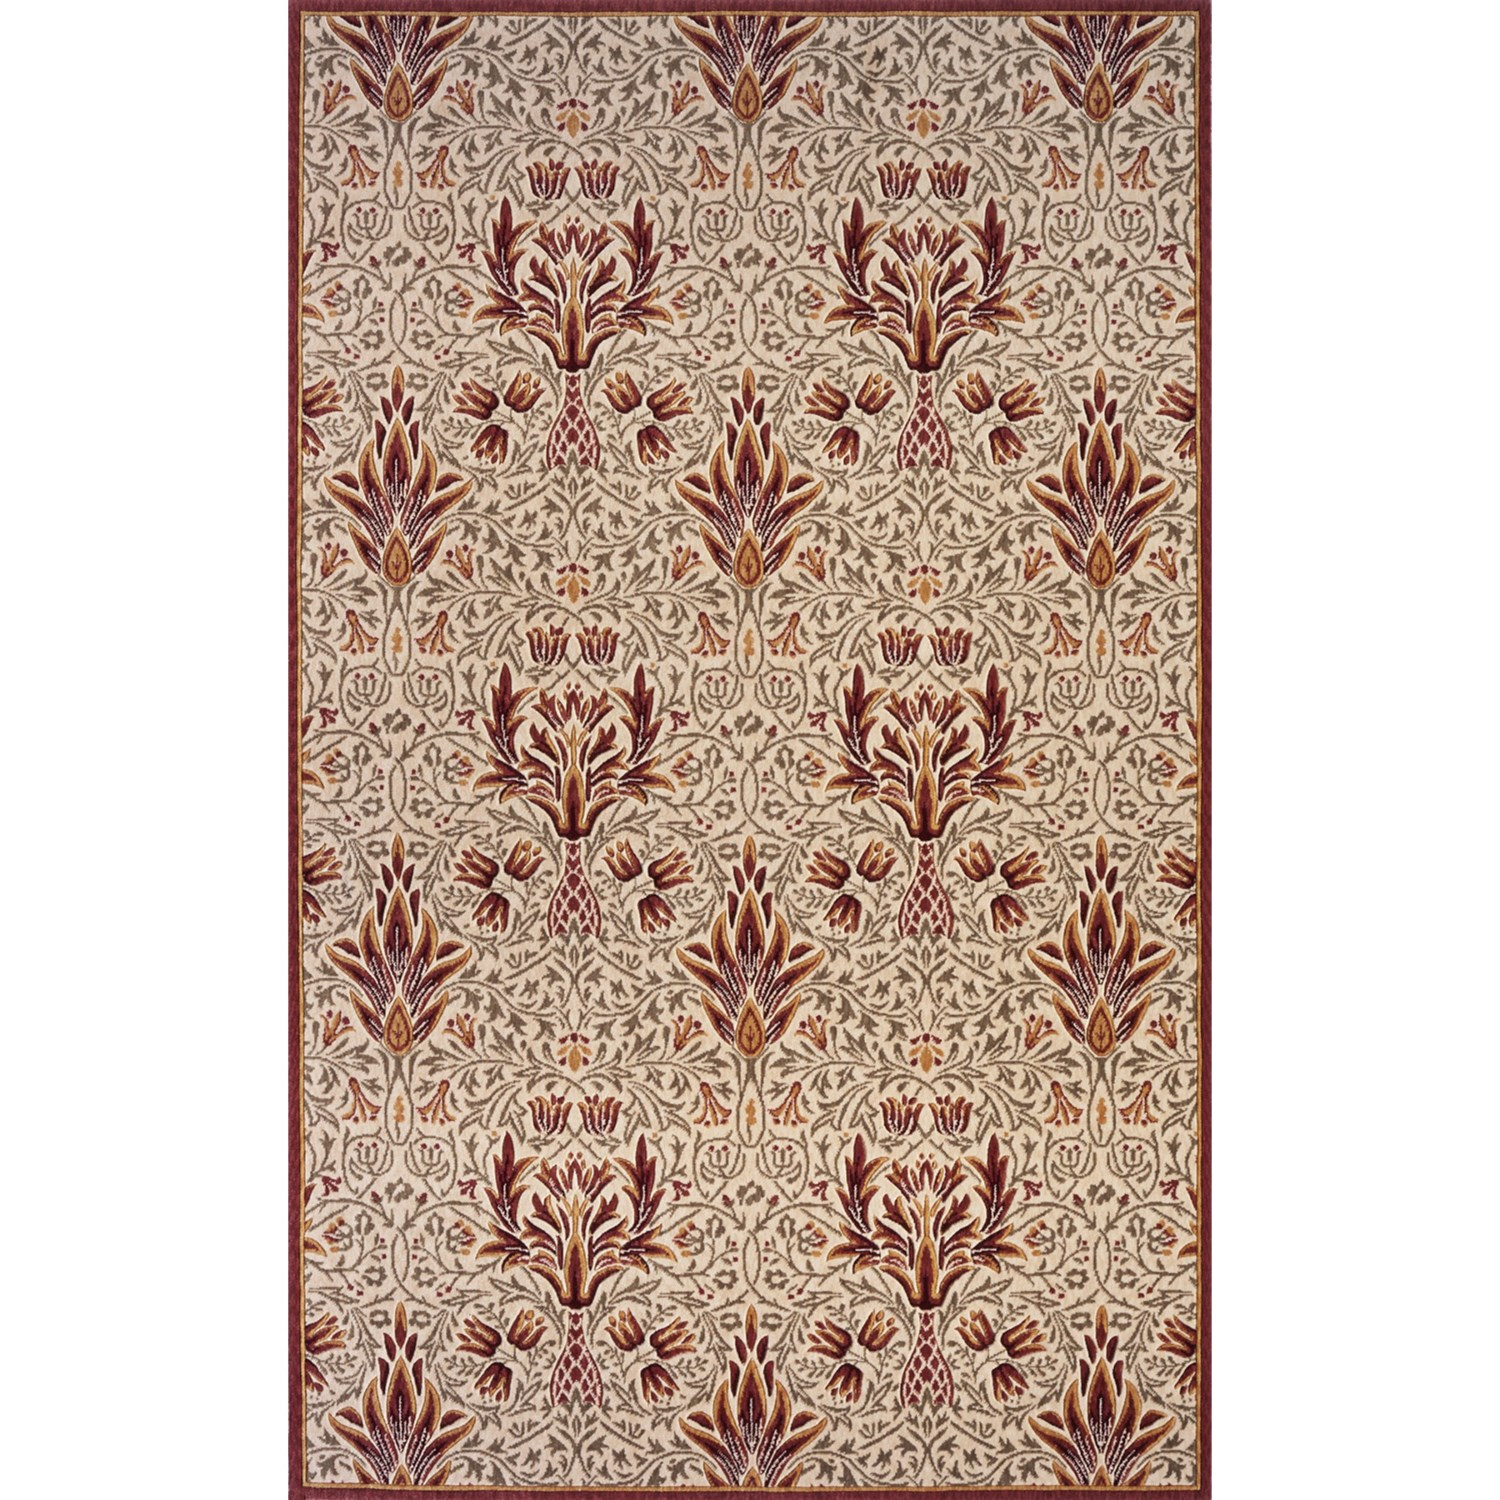 Momeni Nouveau Arts u0026 Crafts Wool Area Rug - 8x10u2019 in Ivory/Red